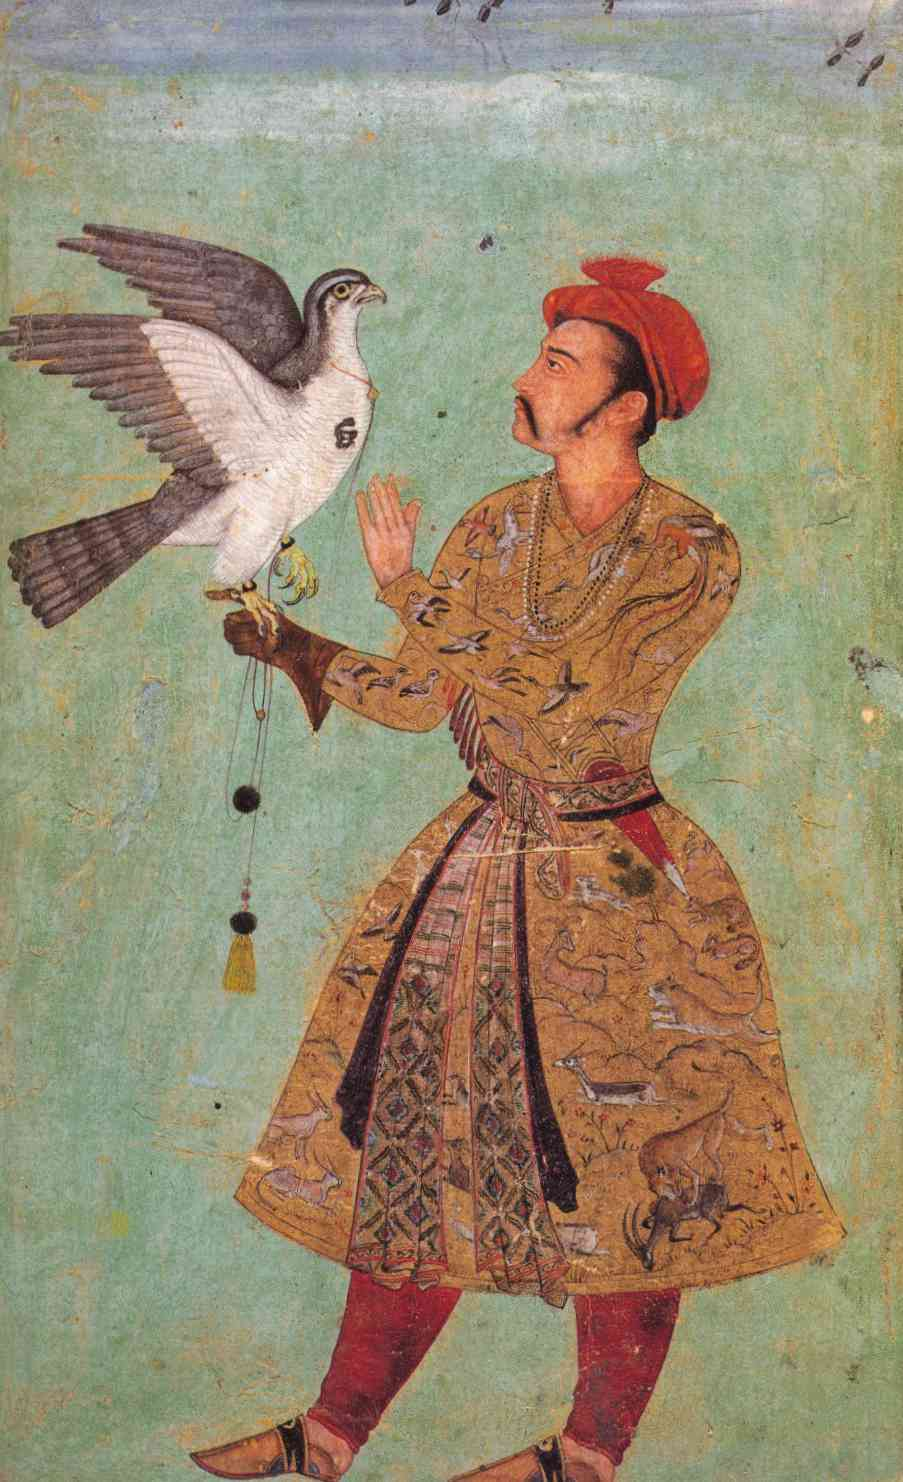 Depictions and descriptions of birds in Mughal writings and art were mostly focused on shikar or menageries.